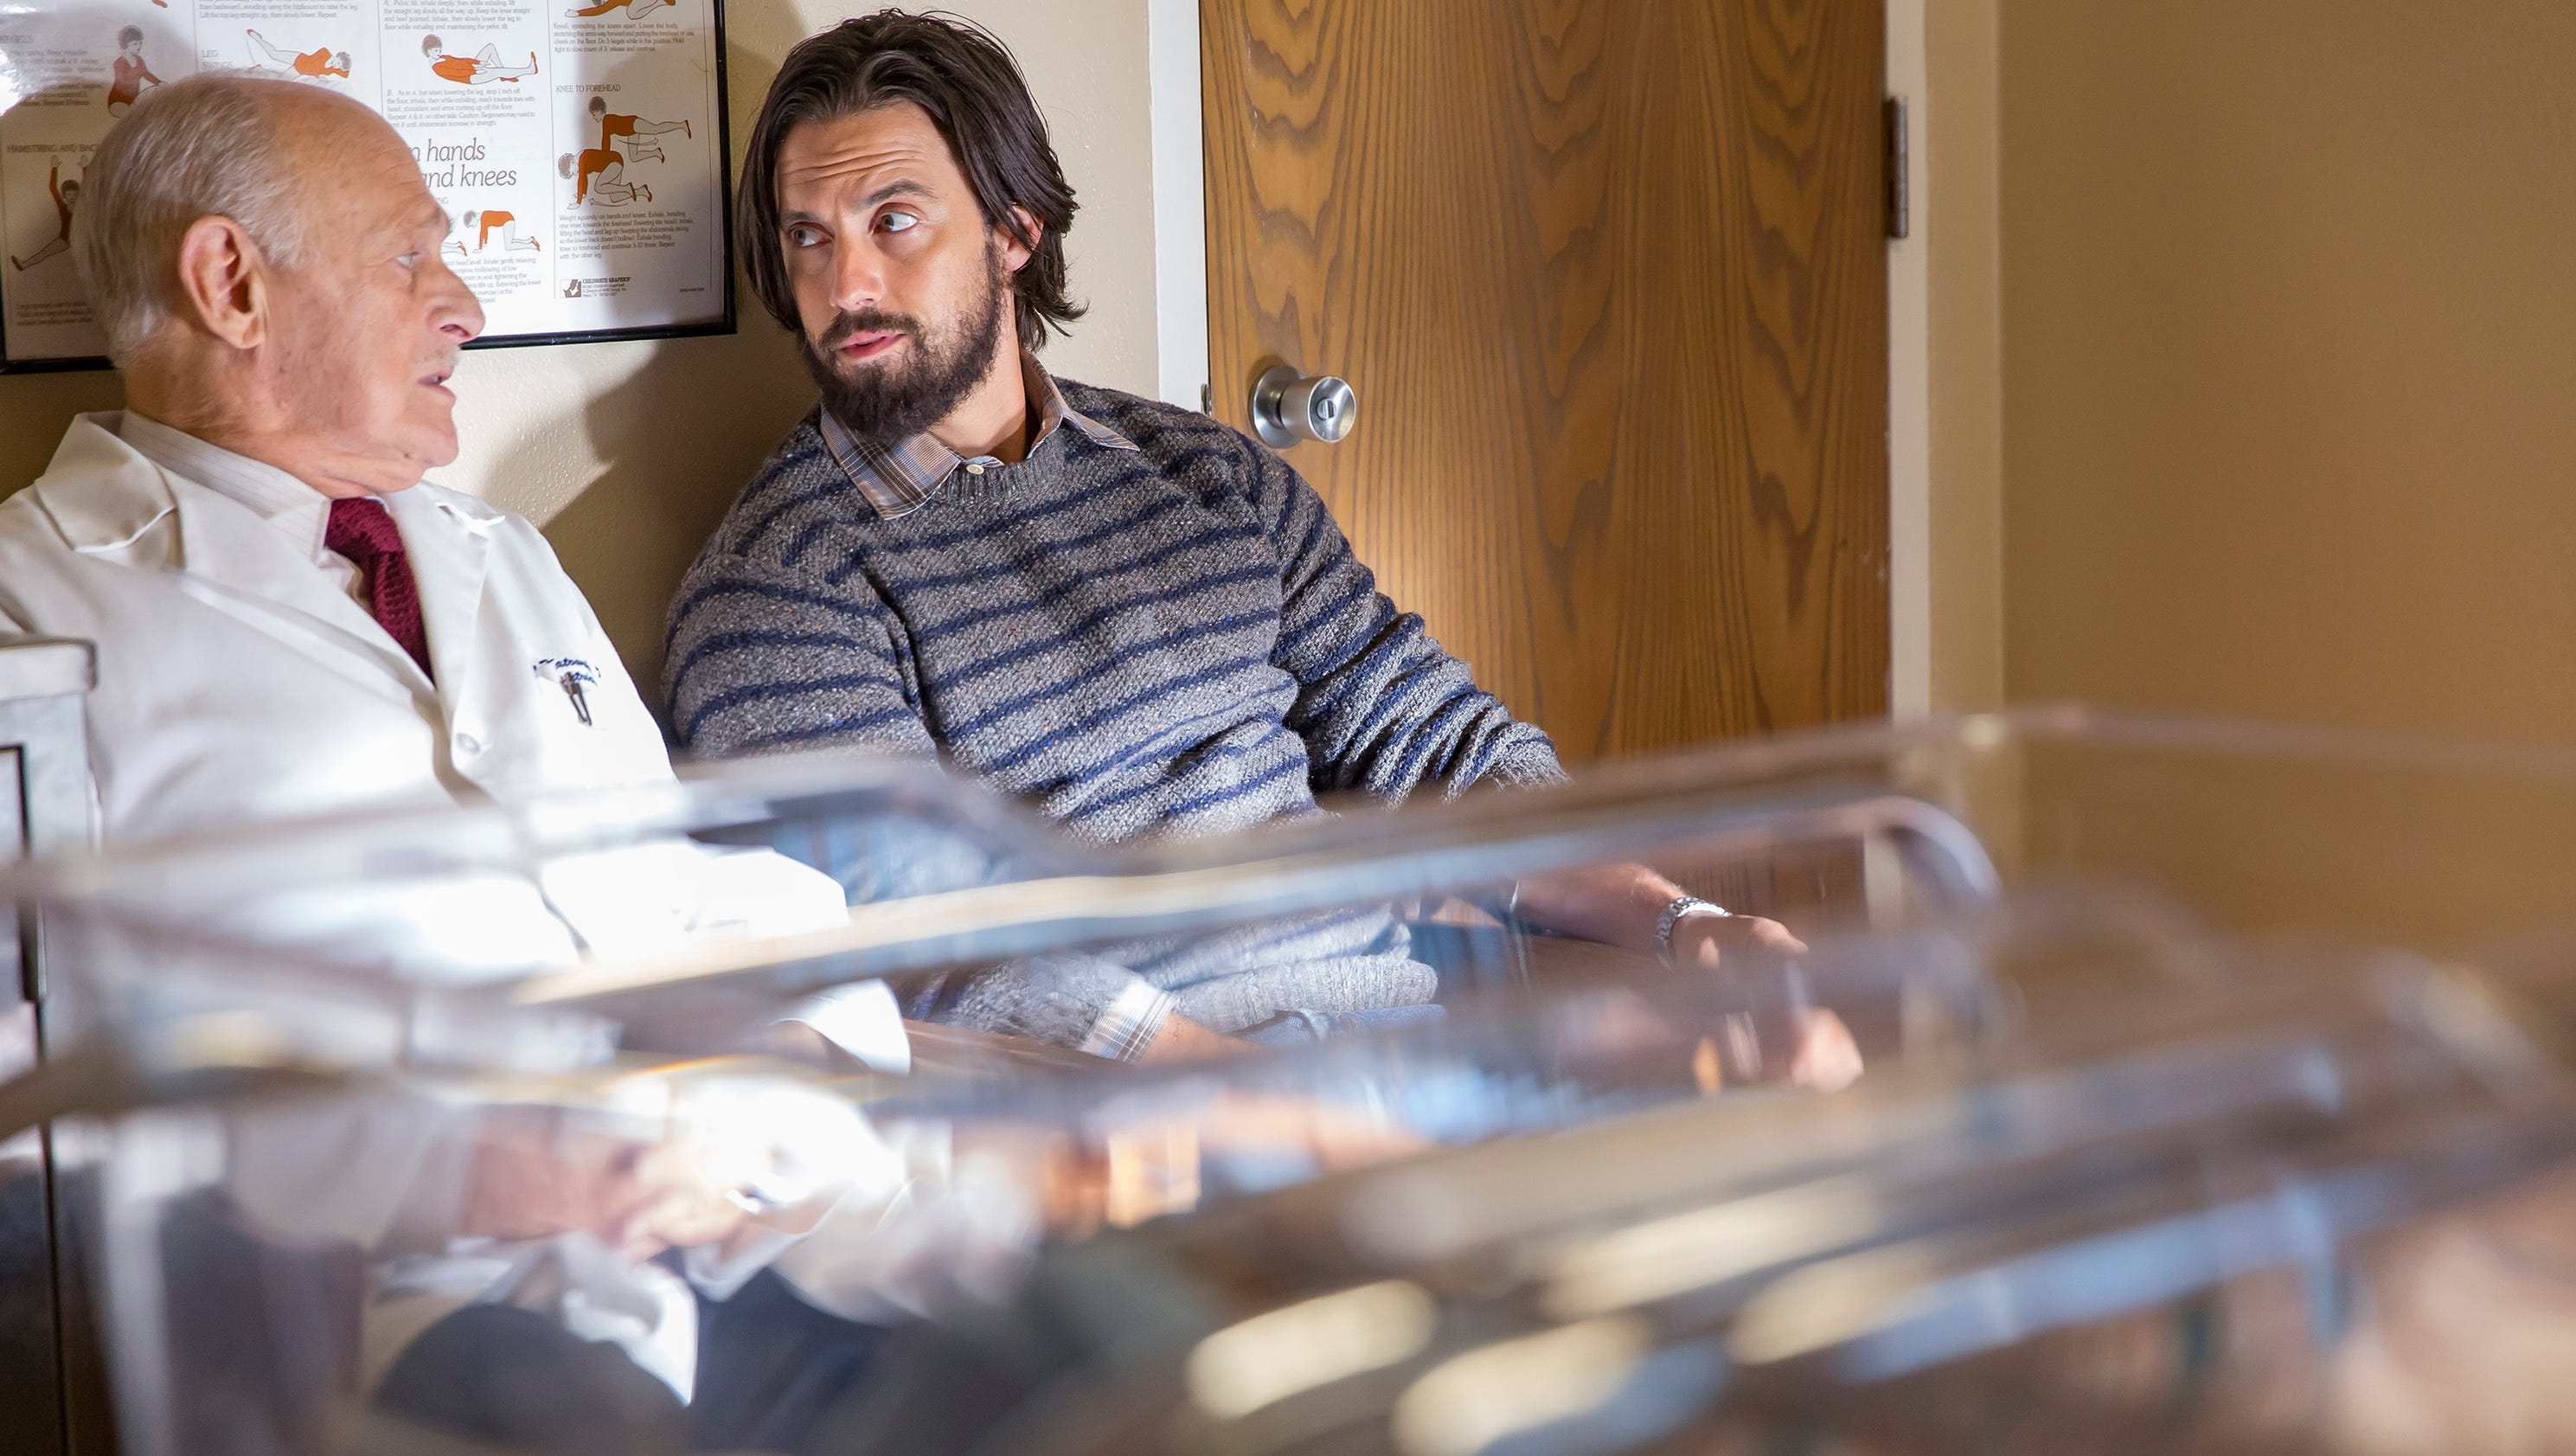 7 tear-jerking moments from 'This Is Us,' ranked